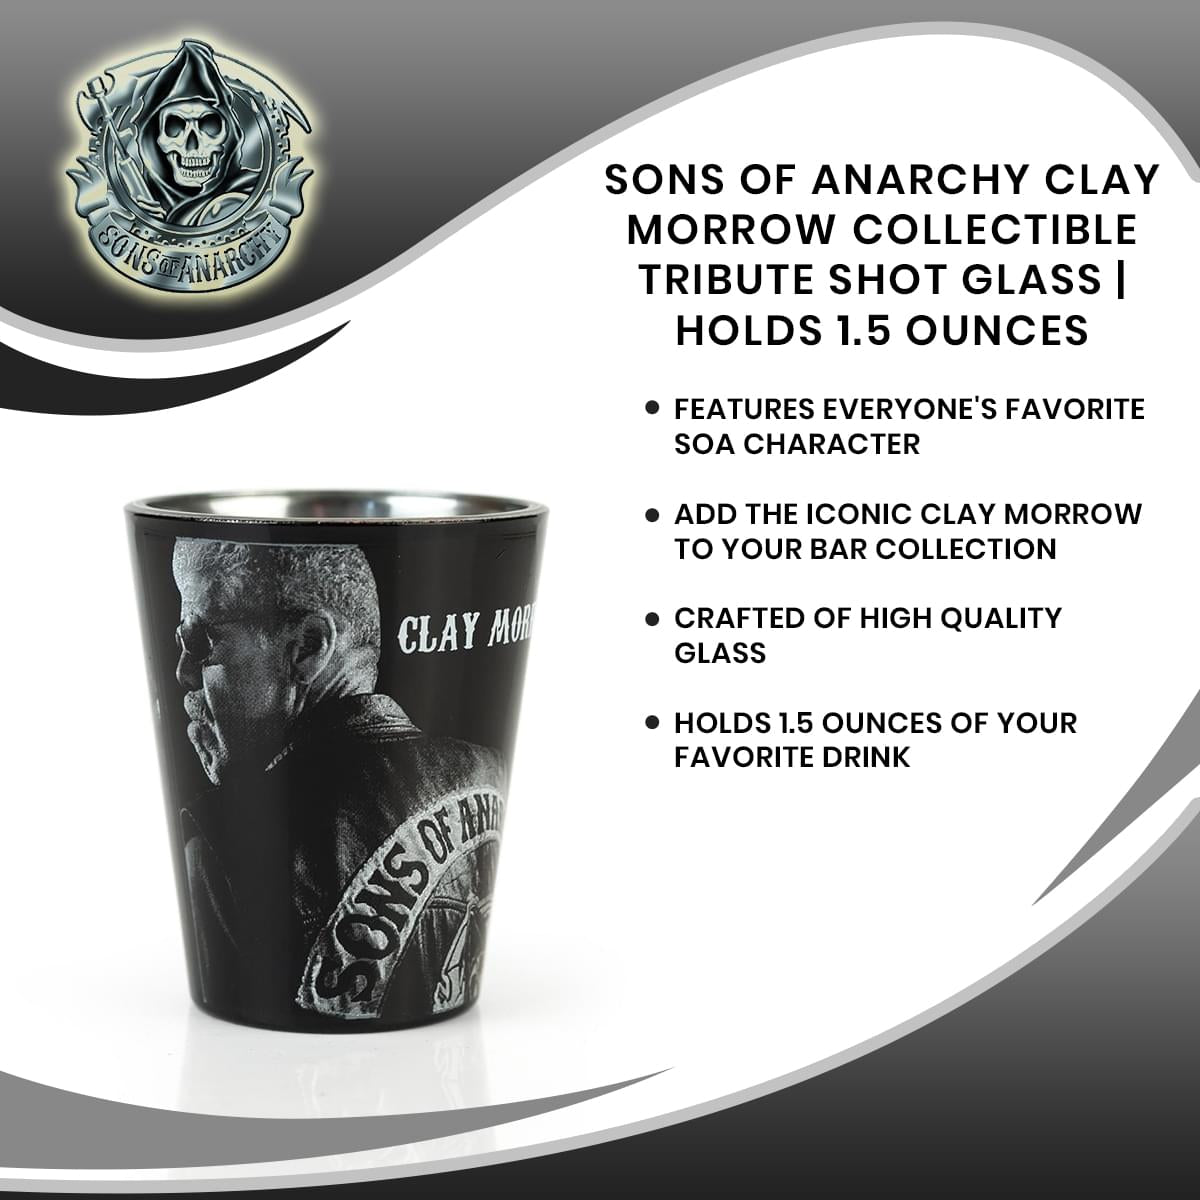 Sons of Anarchy Clay Morrow Collectible Tribute Shot Glass | Holds 1.5 Ounces